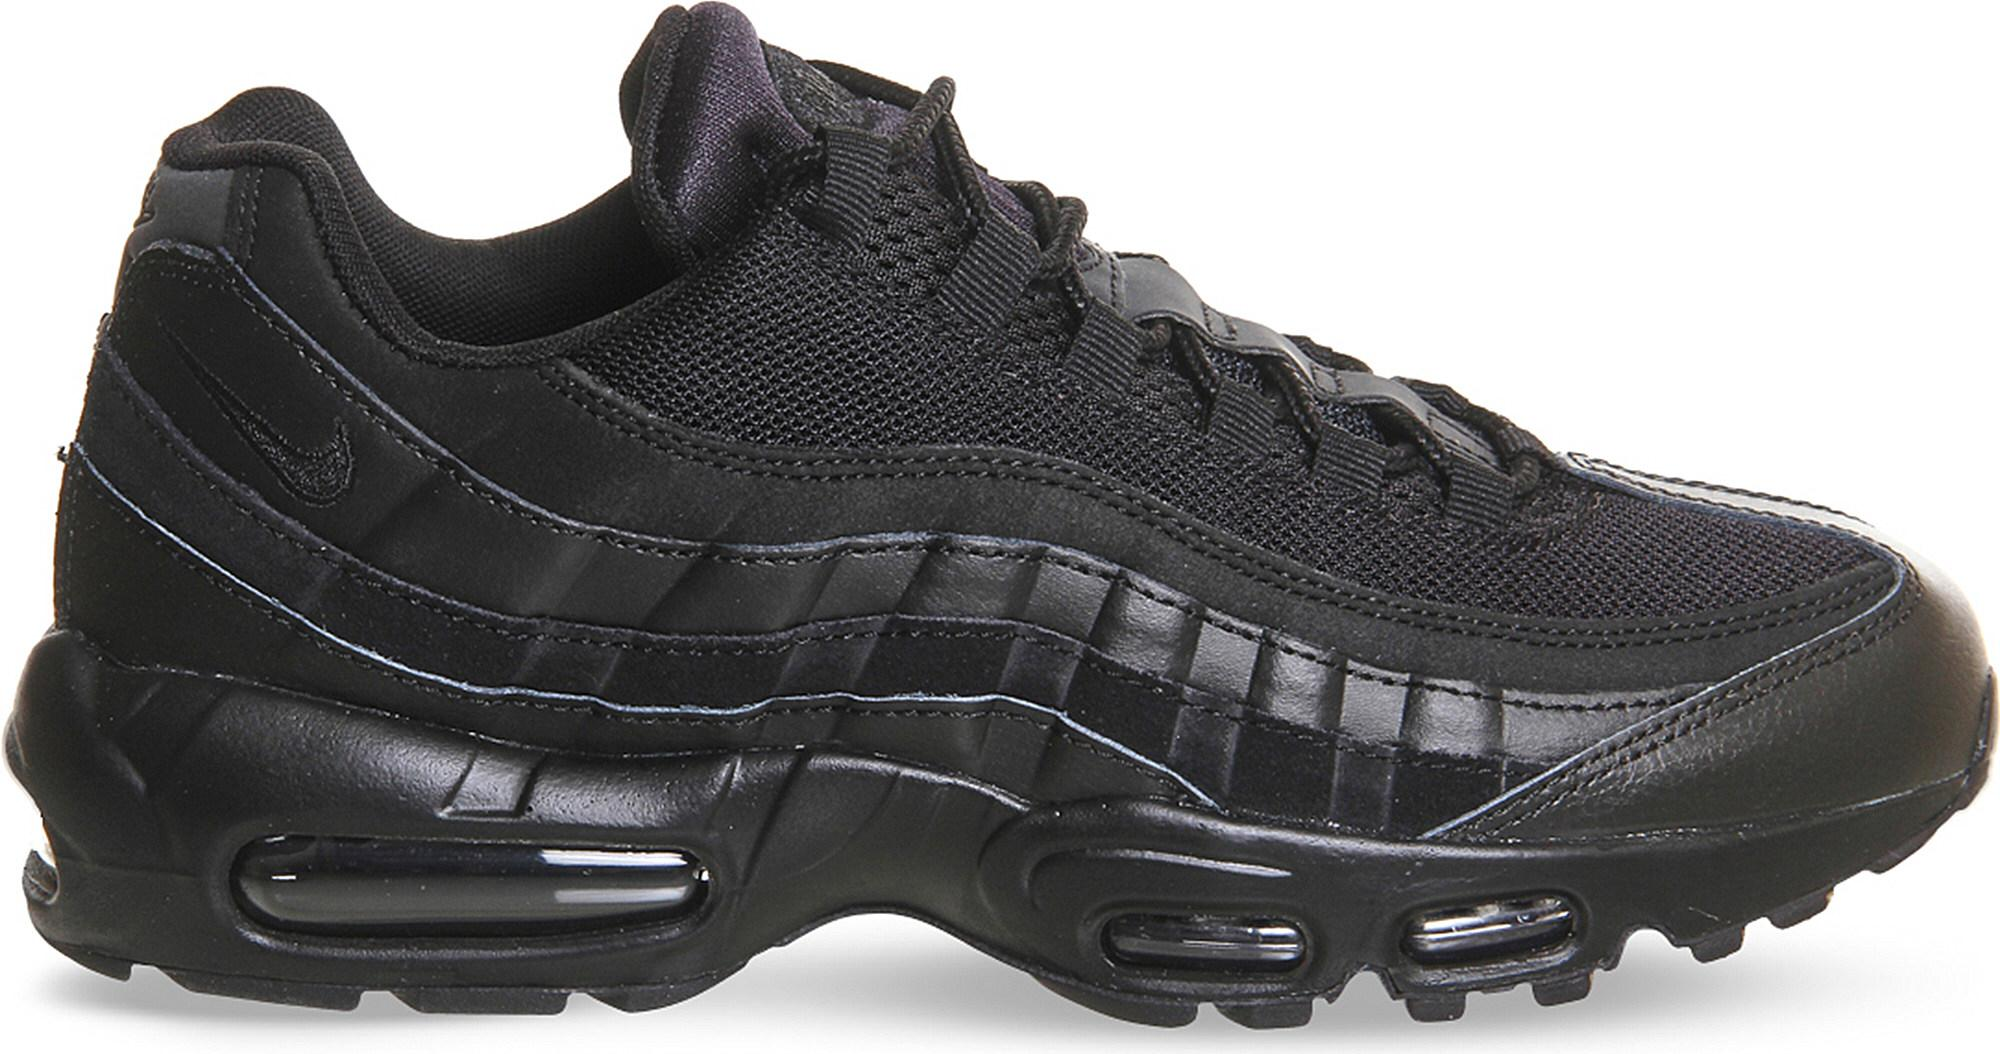 a4f9397f5a11d Lyst - Nike Air Max 95 Essential Mesh And Leather Trainers in Black ...